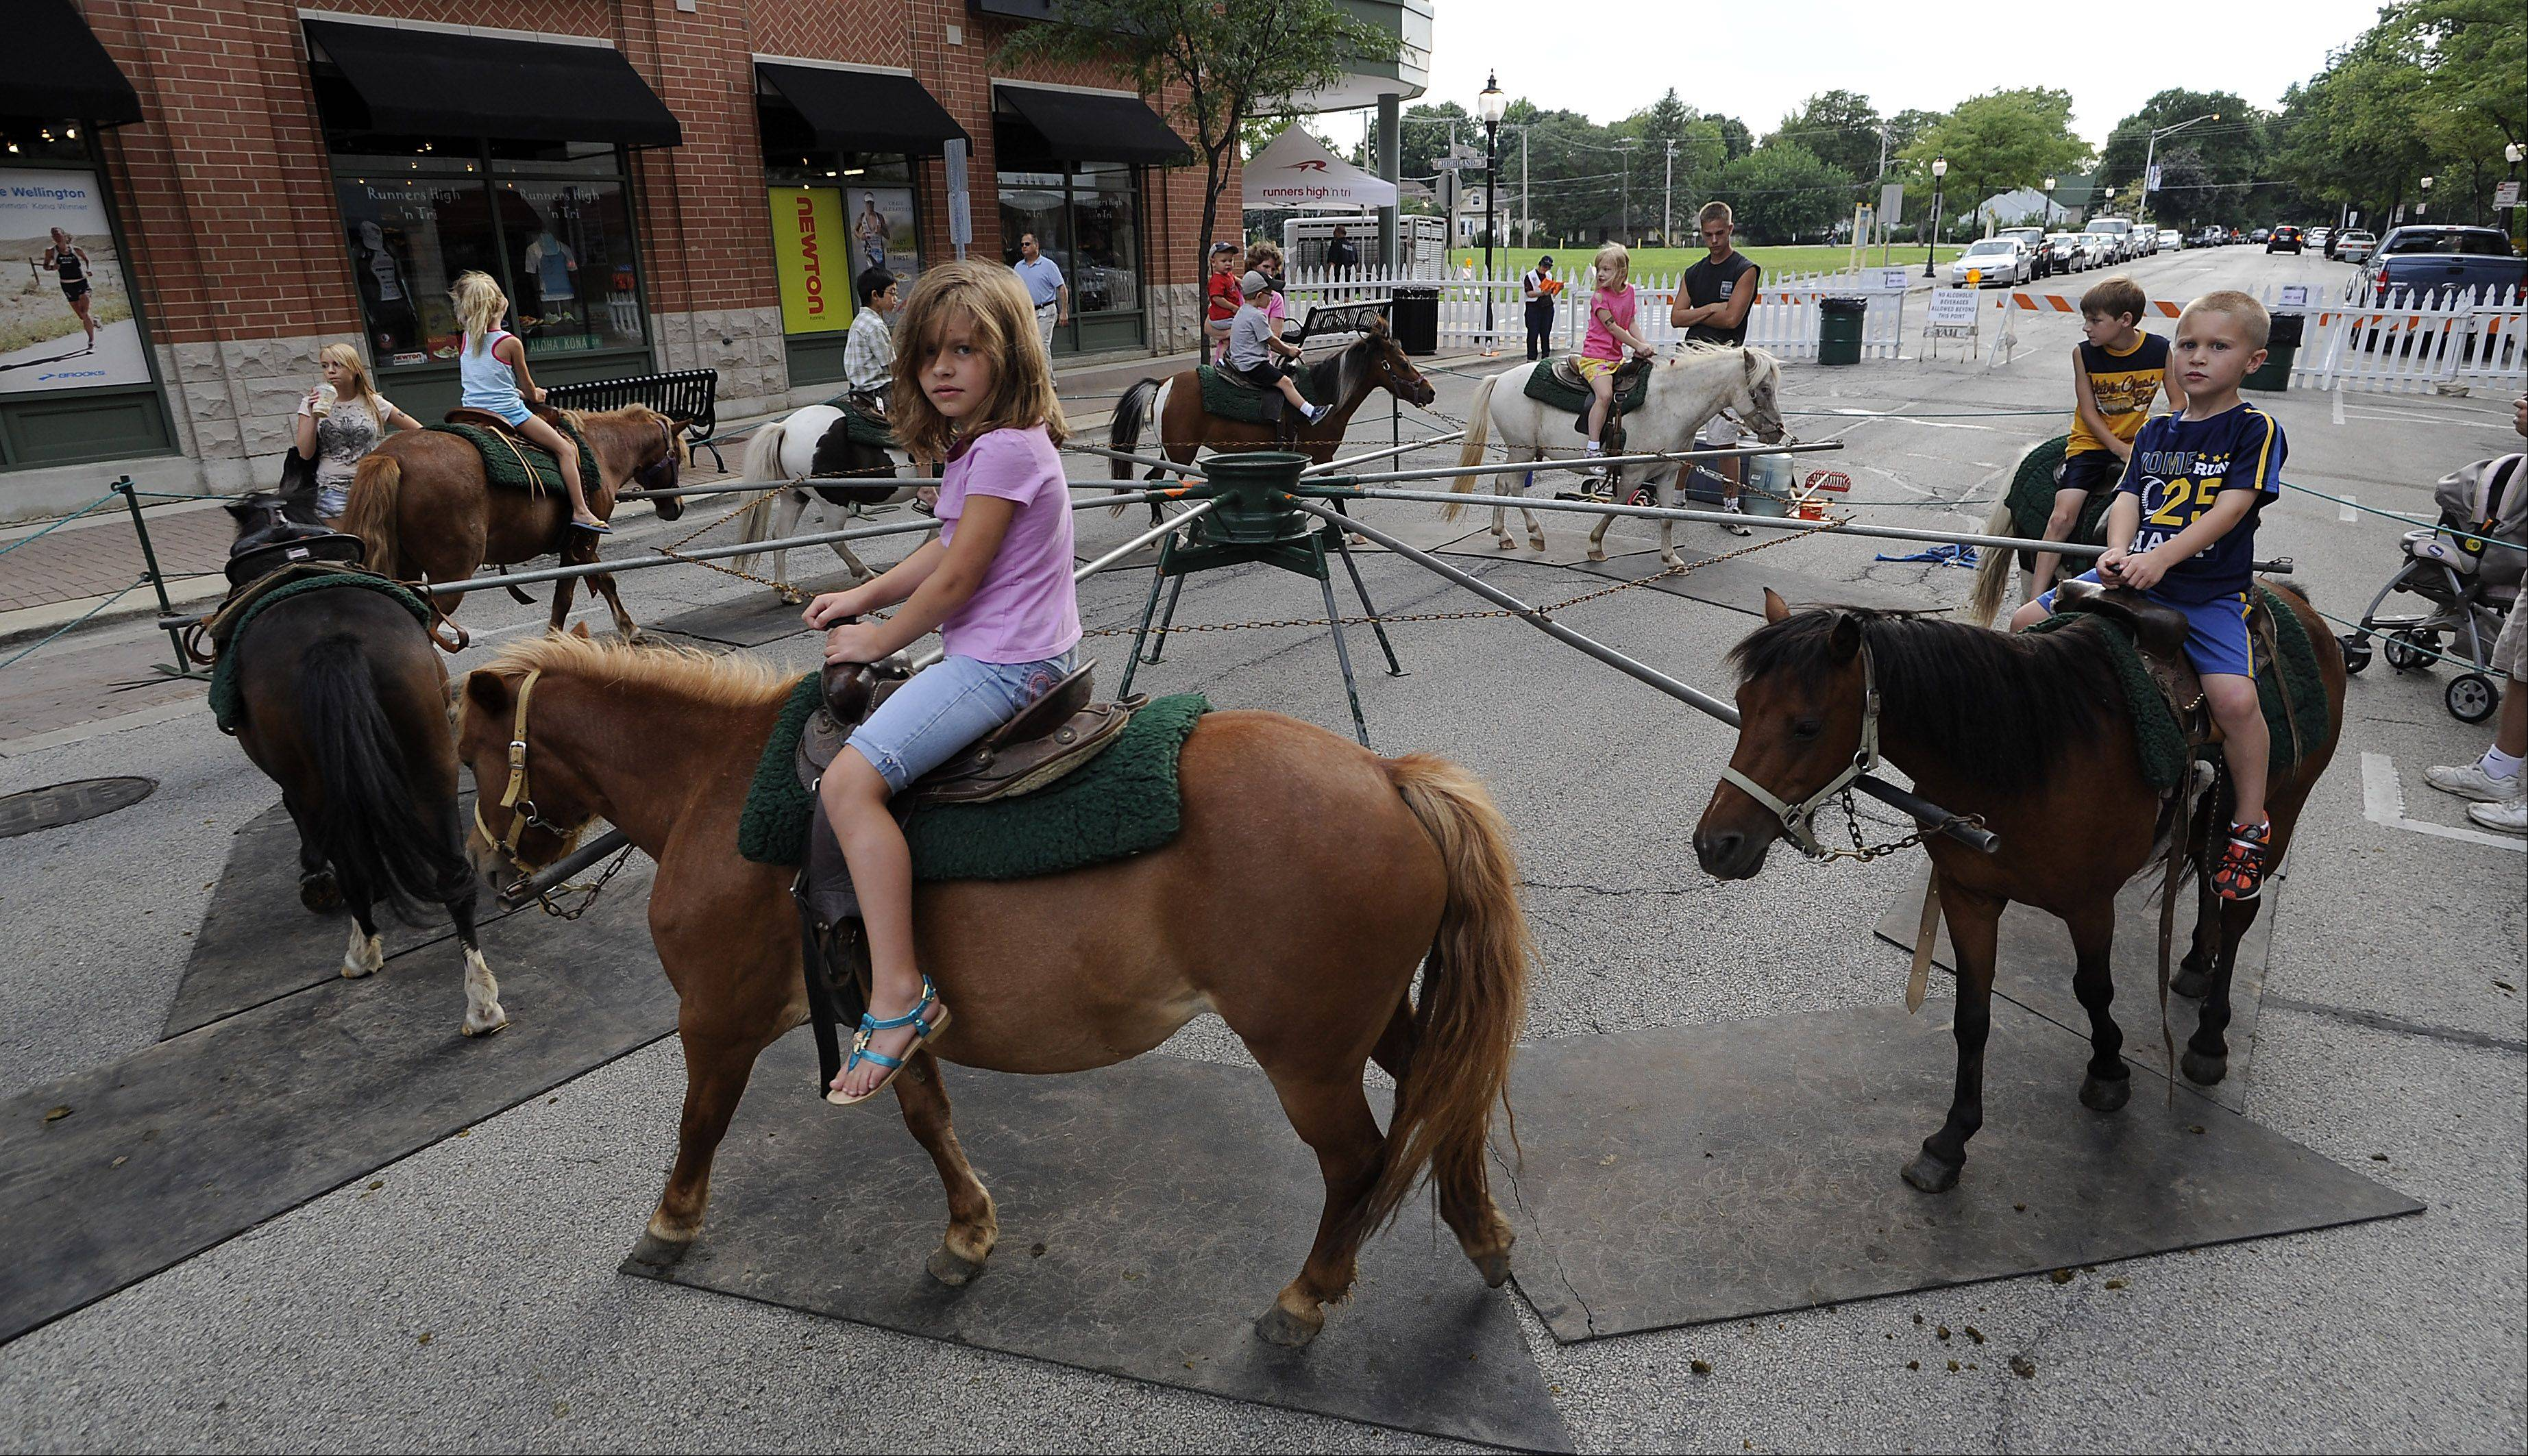 Haley Ferguson, 7, of Mount Prospect goes round and round on a pony at the Mane Event on Friday in downtown Arlington Heights.